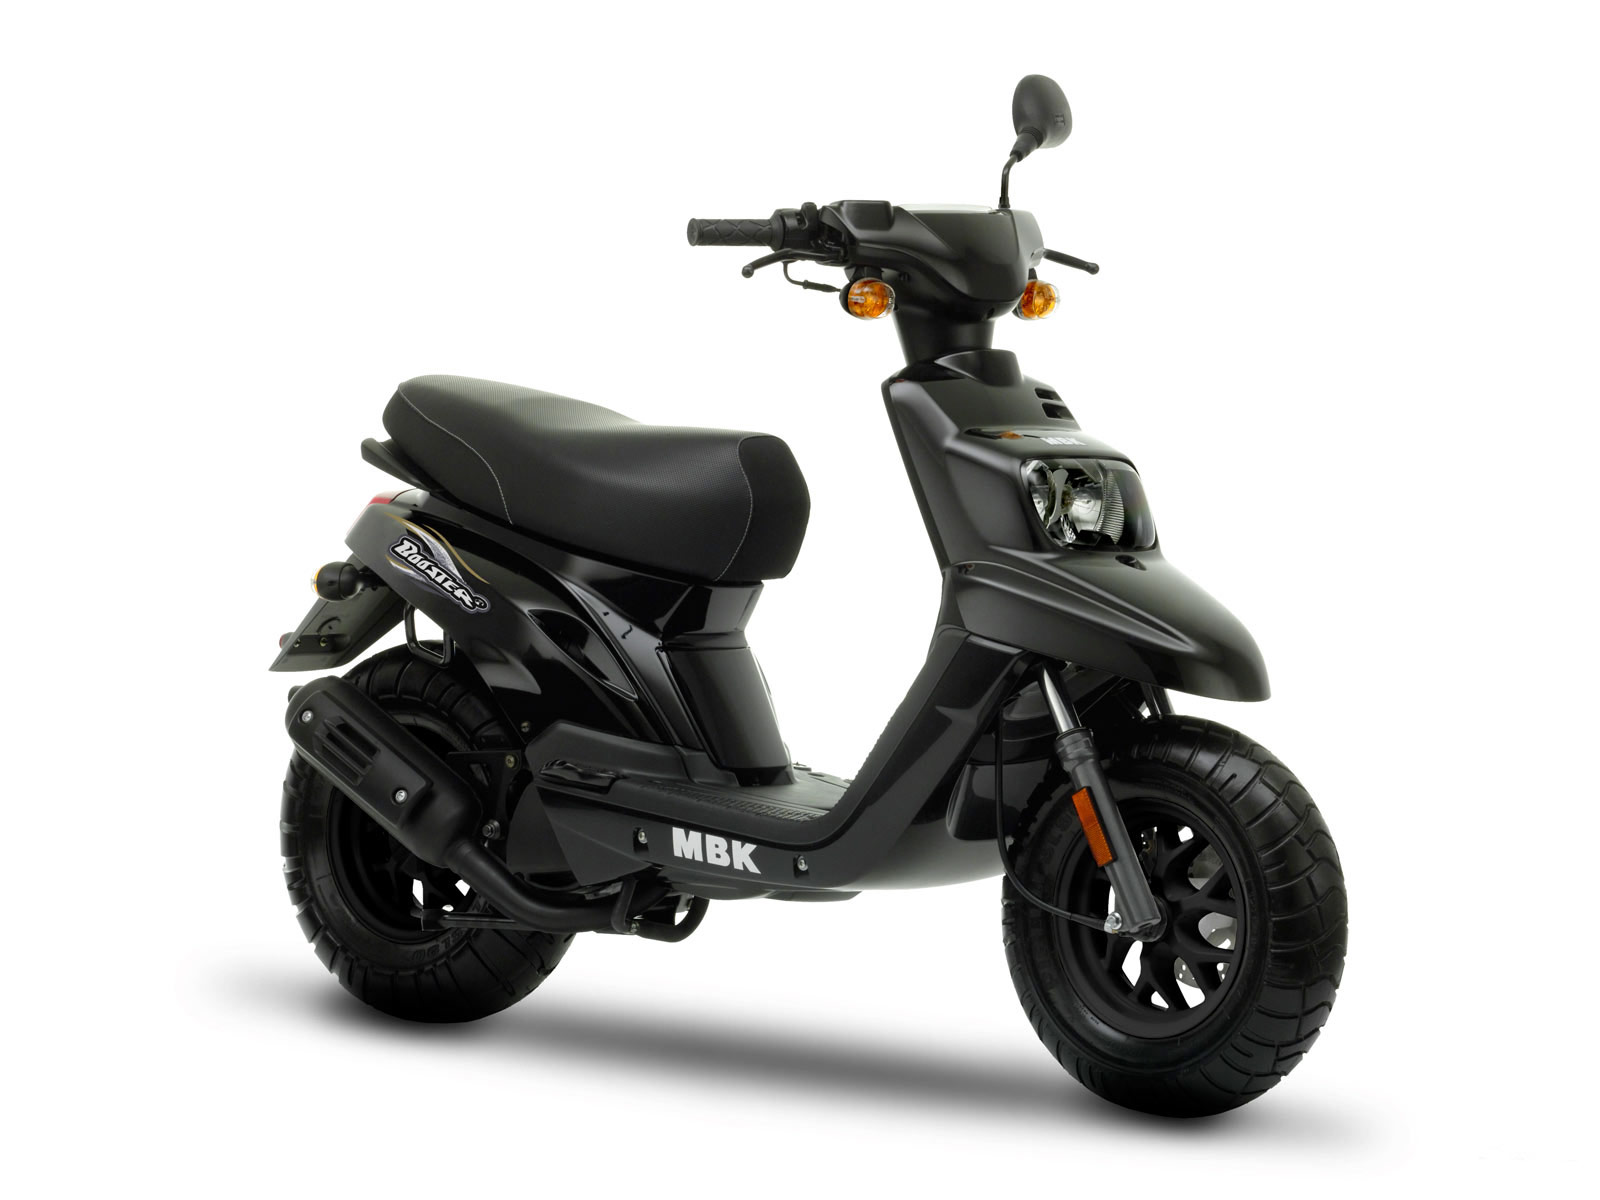 2010 mbk booster scooter pictures. Black Bedroom Furniture Sets. Home Design Ideas